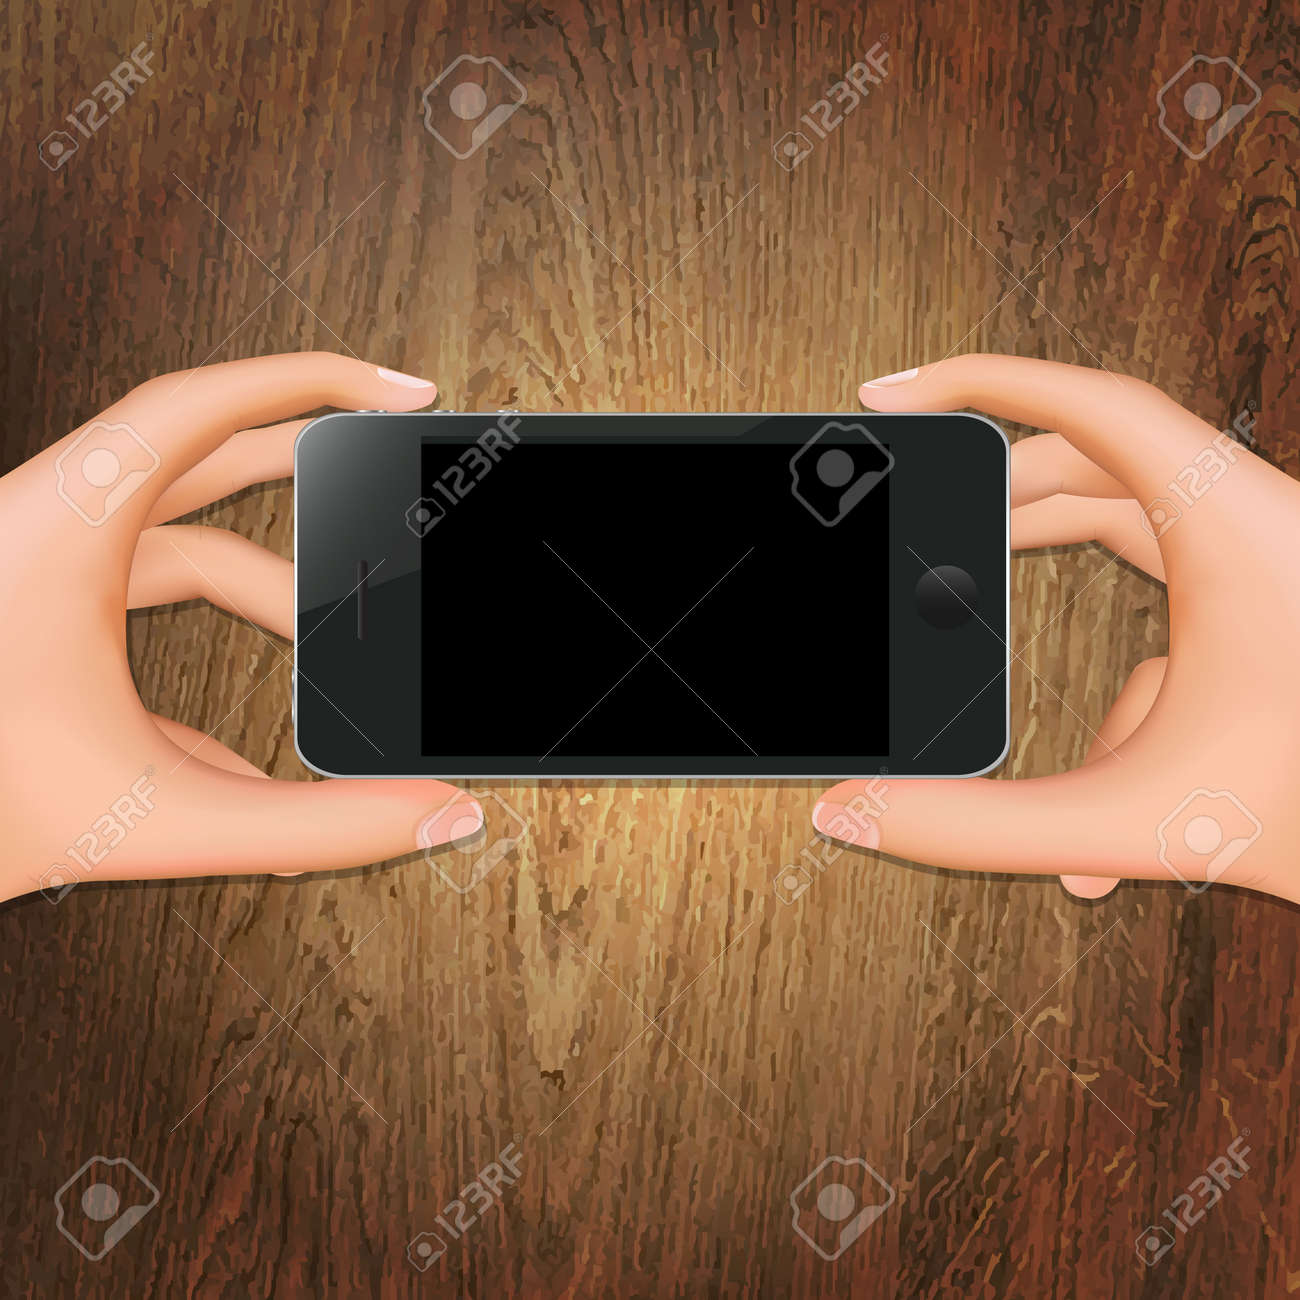 Wooden Background With Hands Holding Phone With Gradient Mesh, Isolated On White Background, Vector Illustration Stock Vector - 18427765